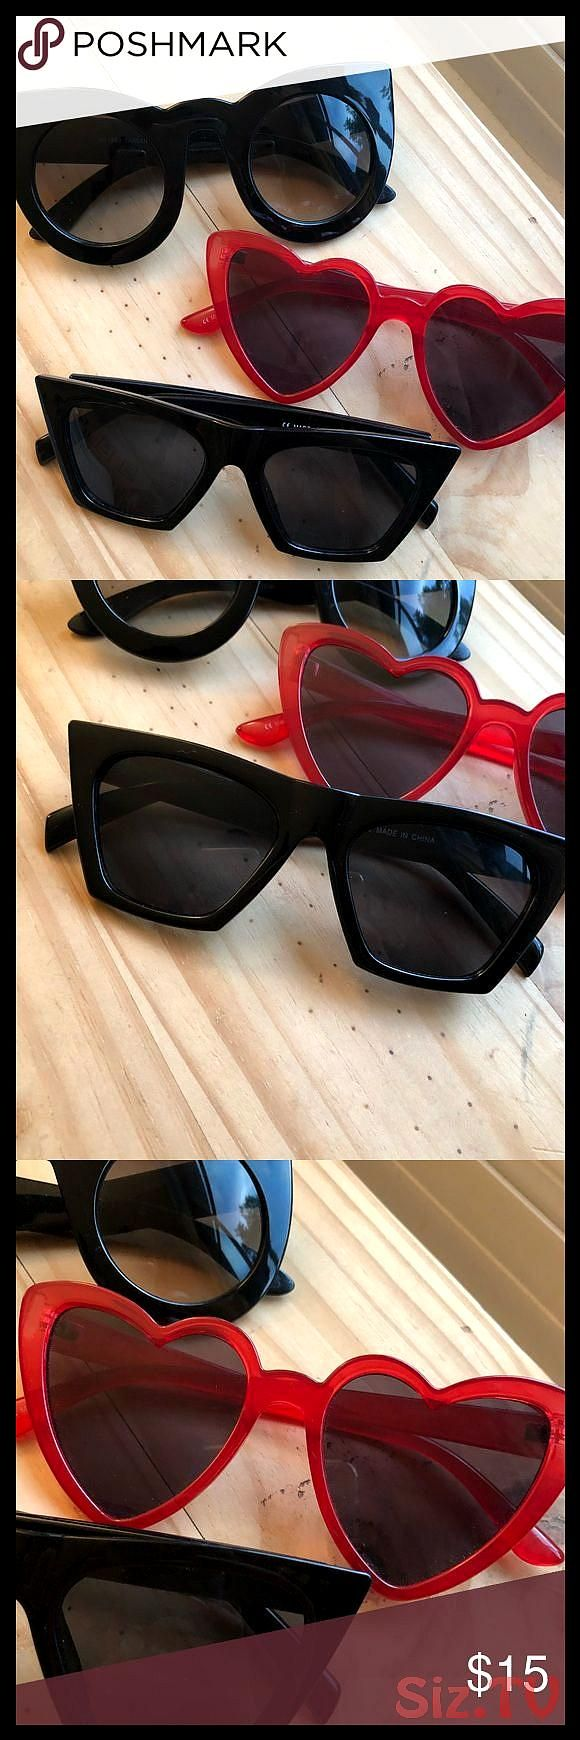 Trendy Sunglasses Bundle Really awesome and trendy sunglasses All for one price All in fantastic condition Tons of life leftThe heart sunglassesTrendy Sunglasses Bundle R...